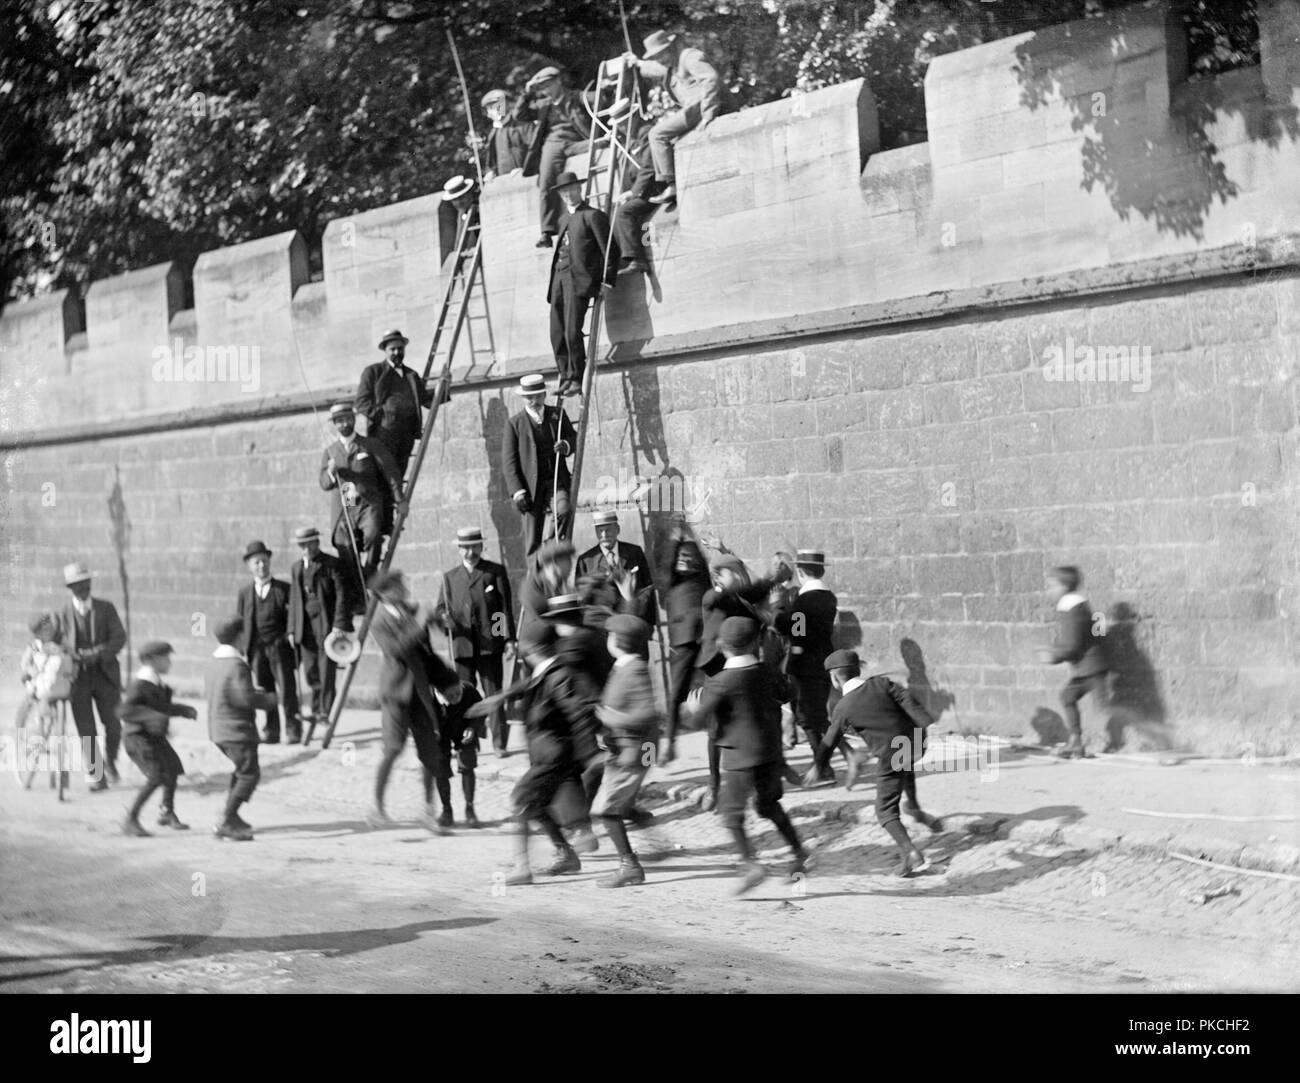 Beating the Bounds, Longwall Street, Oxford, Oxfordshire, 1908. Boys scramble for coins at Longwall during the annual ceremony of beating the bounds, which reinforces knowledge of the parish boundary. The ceremony, which takes place on Ascension Day, is led by the parish priest, seen here up the ladder. - Stock Image